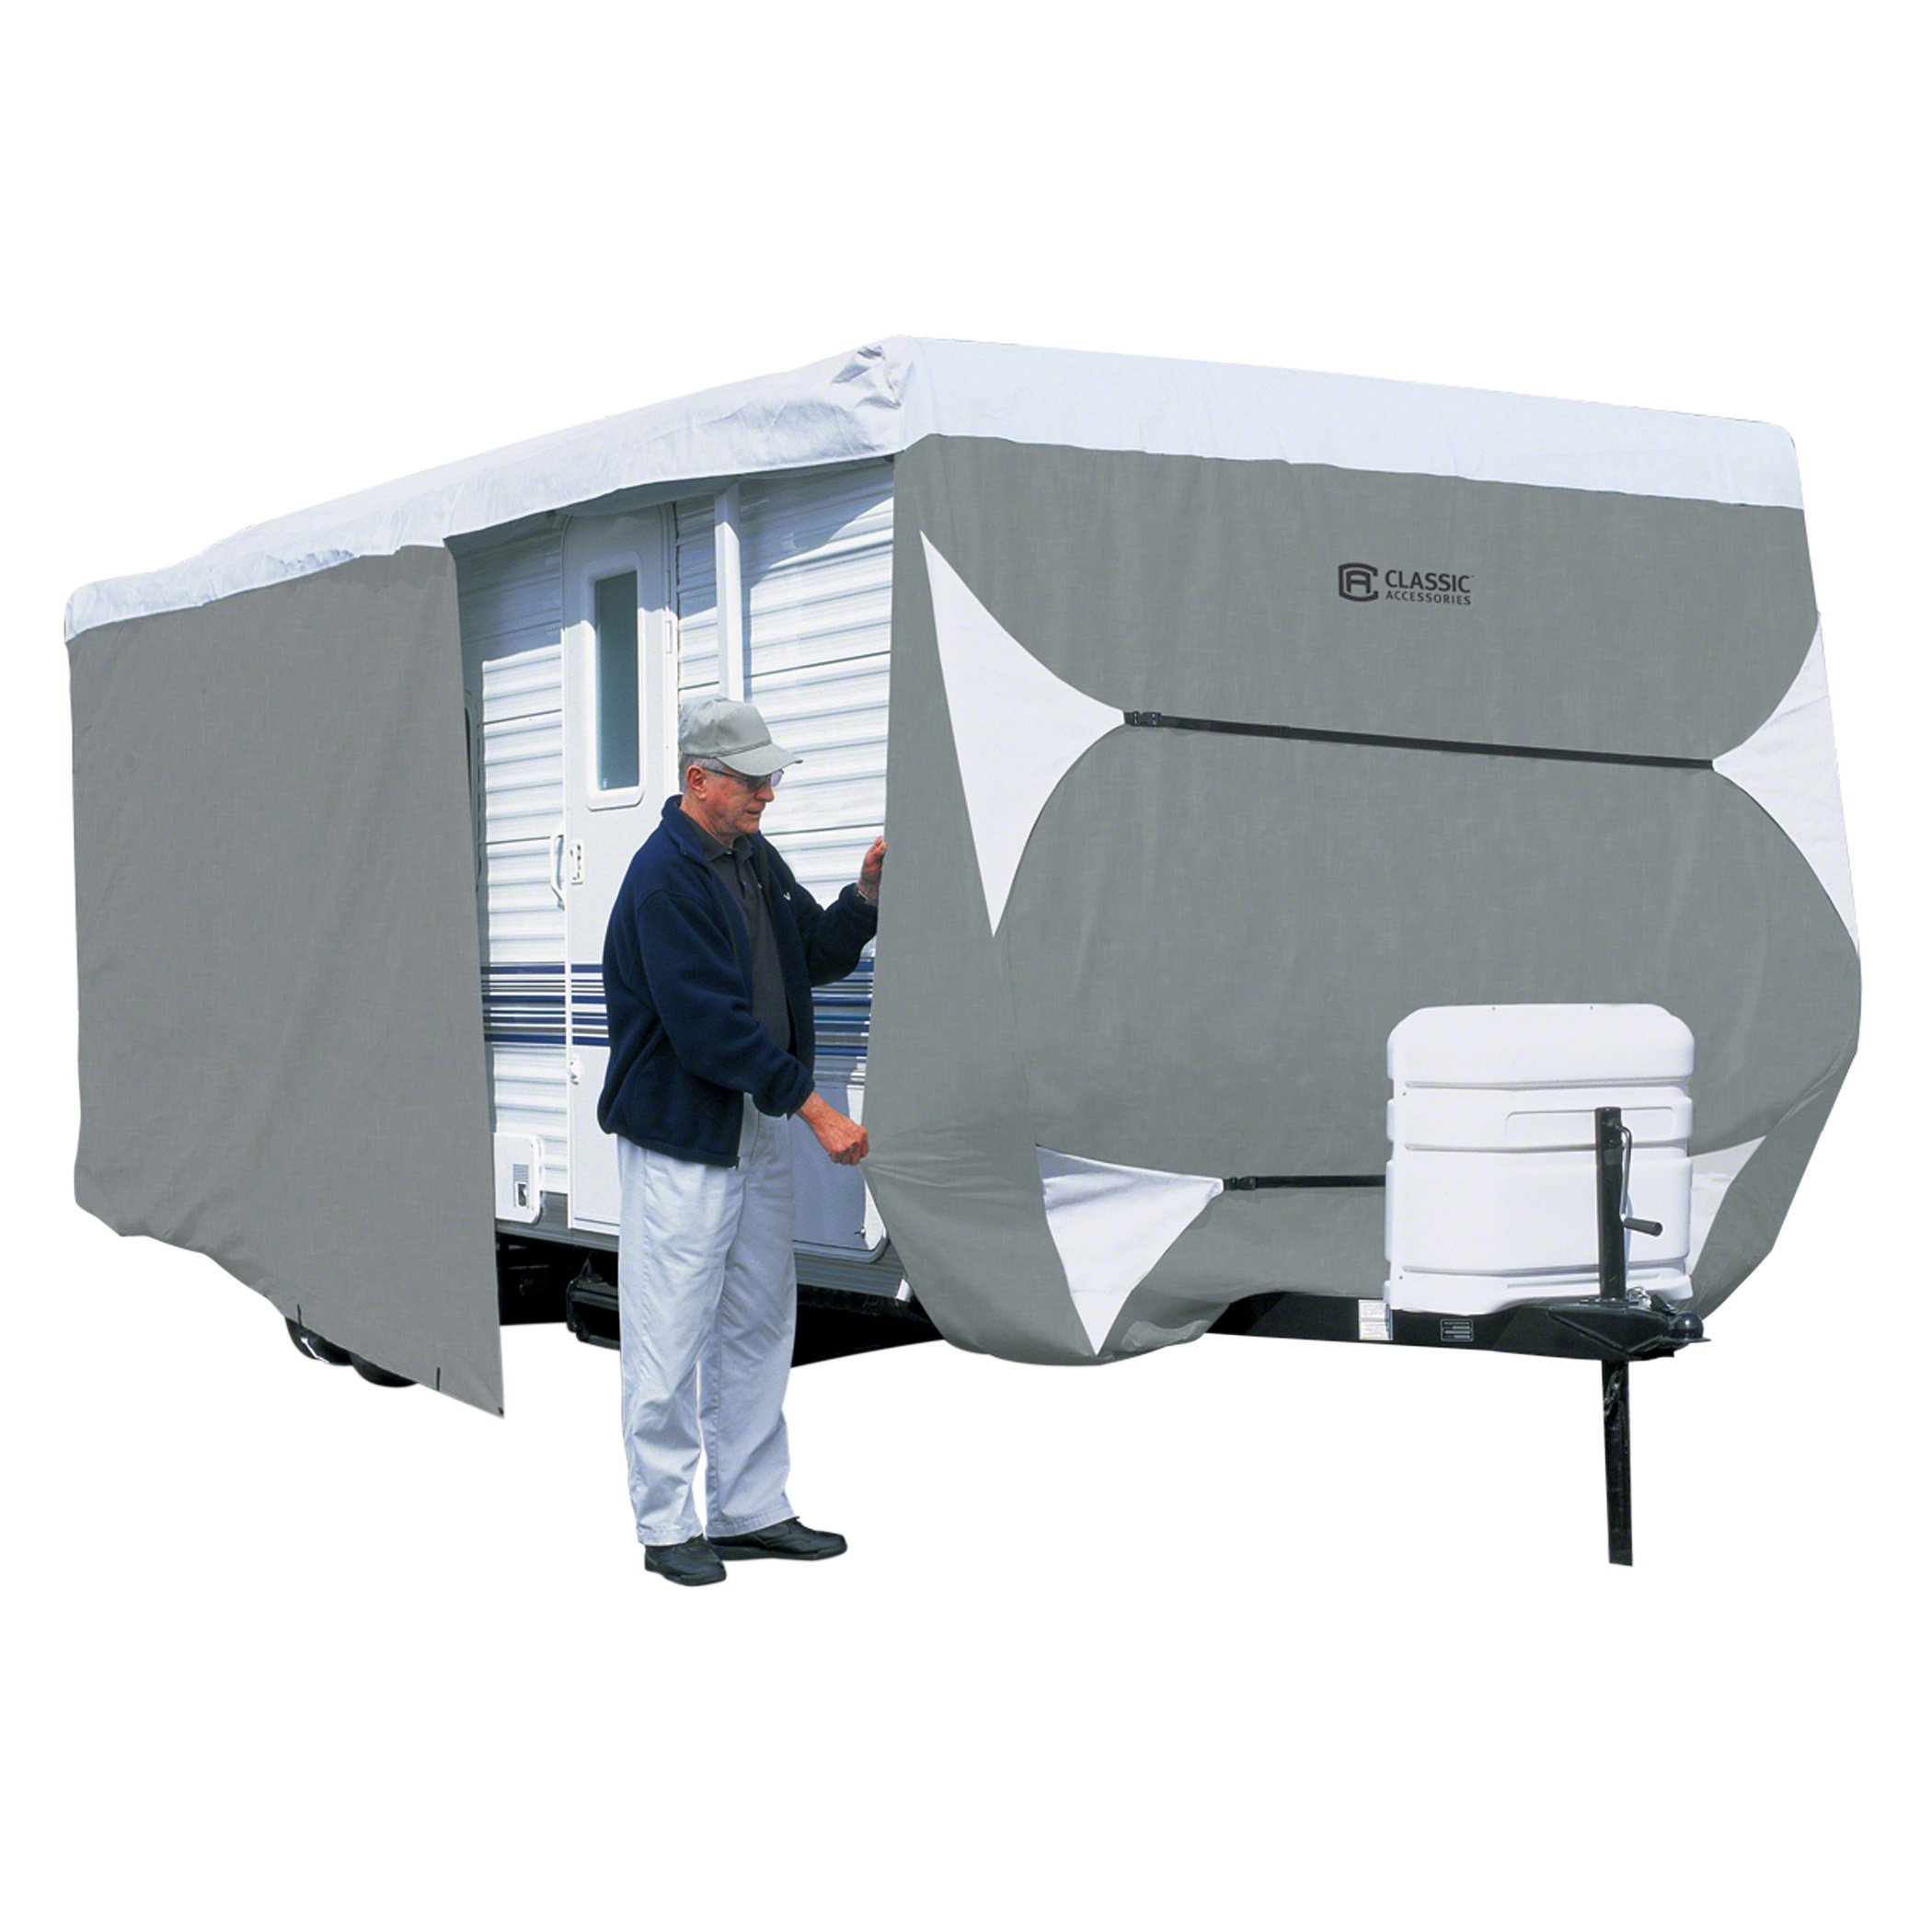 Classic Accessories OverDrive PolyPro 3 Deluxe Travel Trailer Cover, Fits 33' - 35' by Classic Accessories (Image #4)